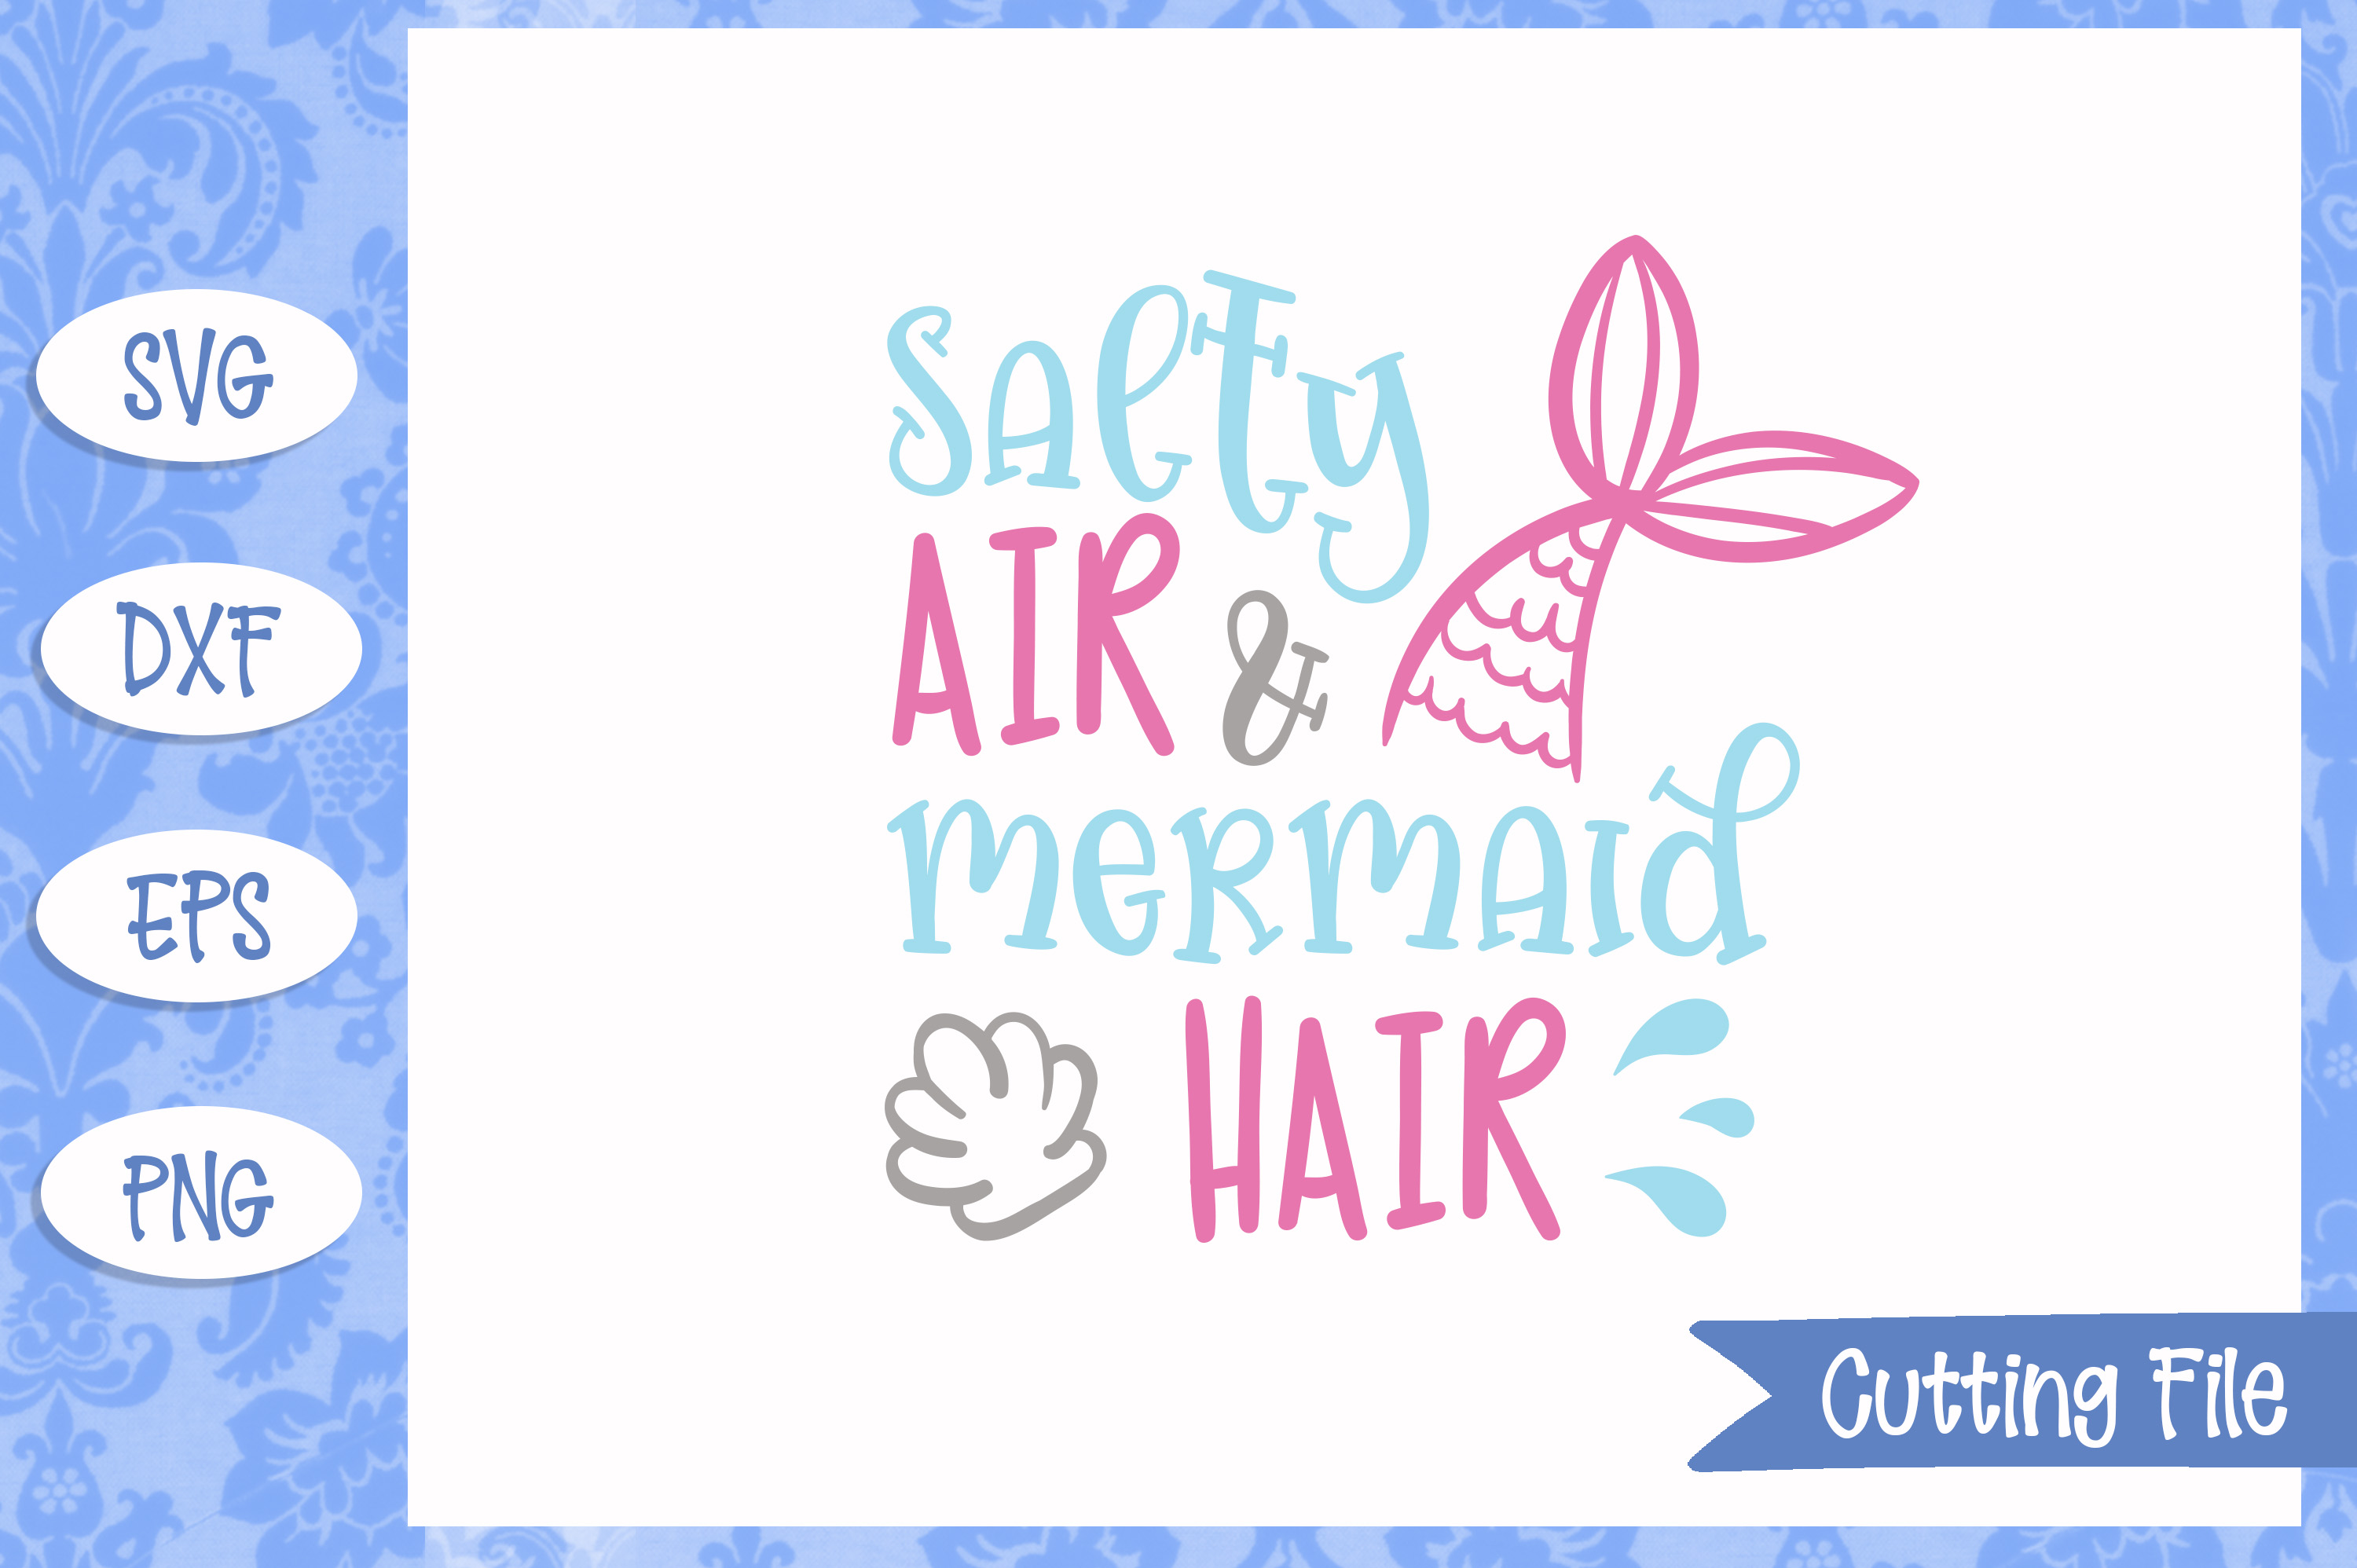 Salty air and mermaid hair, Mermaid SVG File example image 1